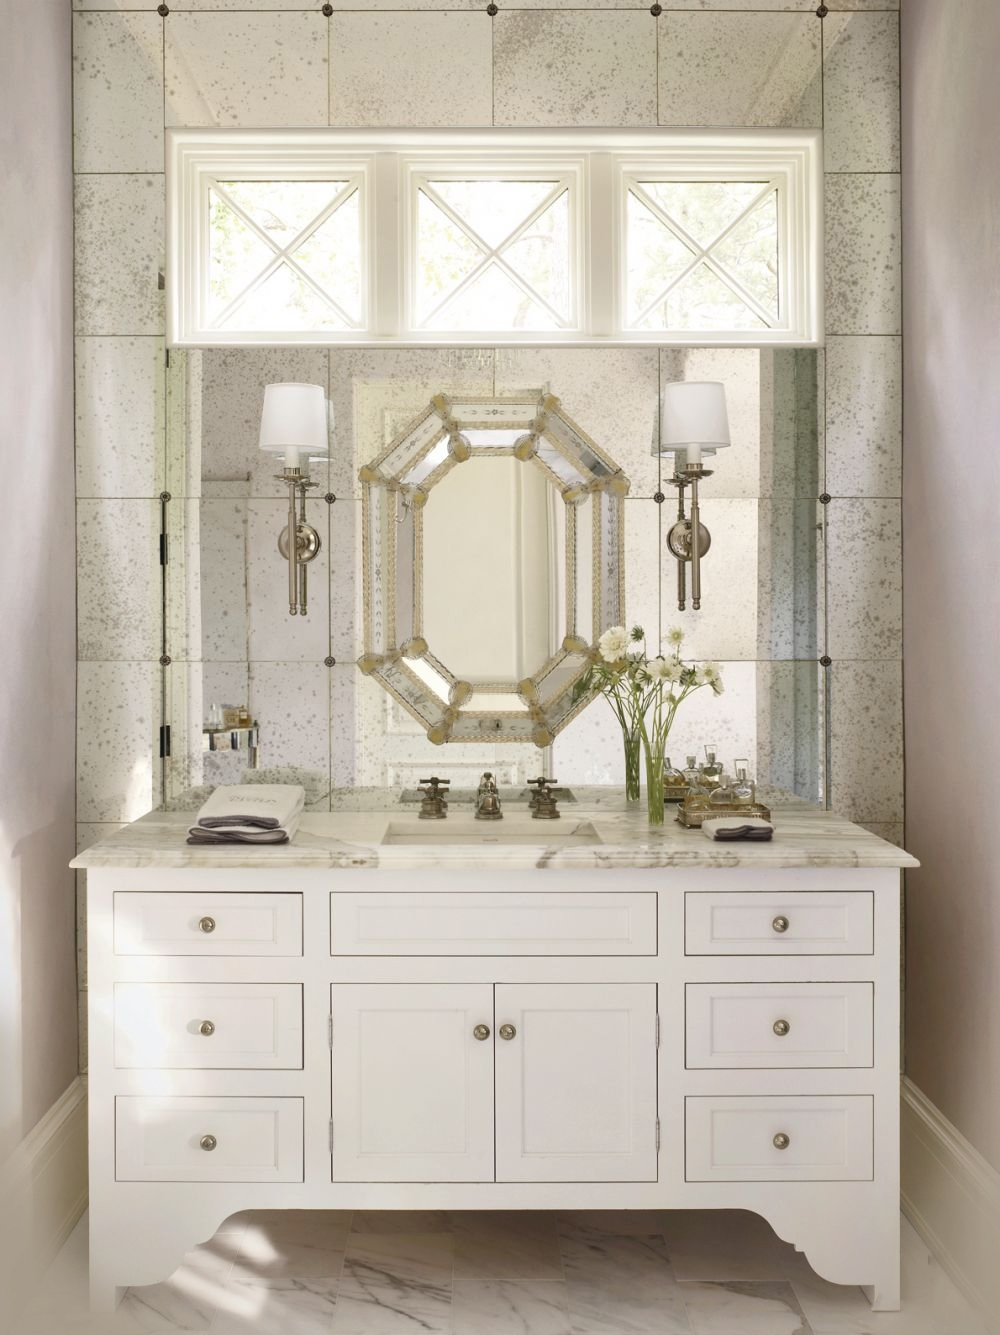 Beautiful Bathroom Mirrors Bathroom Regarding Antique Mirrors For Bathrooms (View 12 of 15)